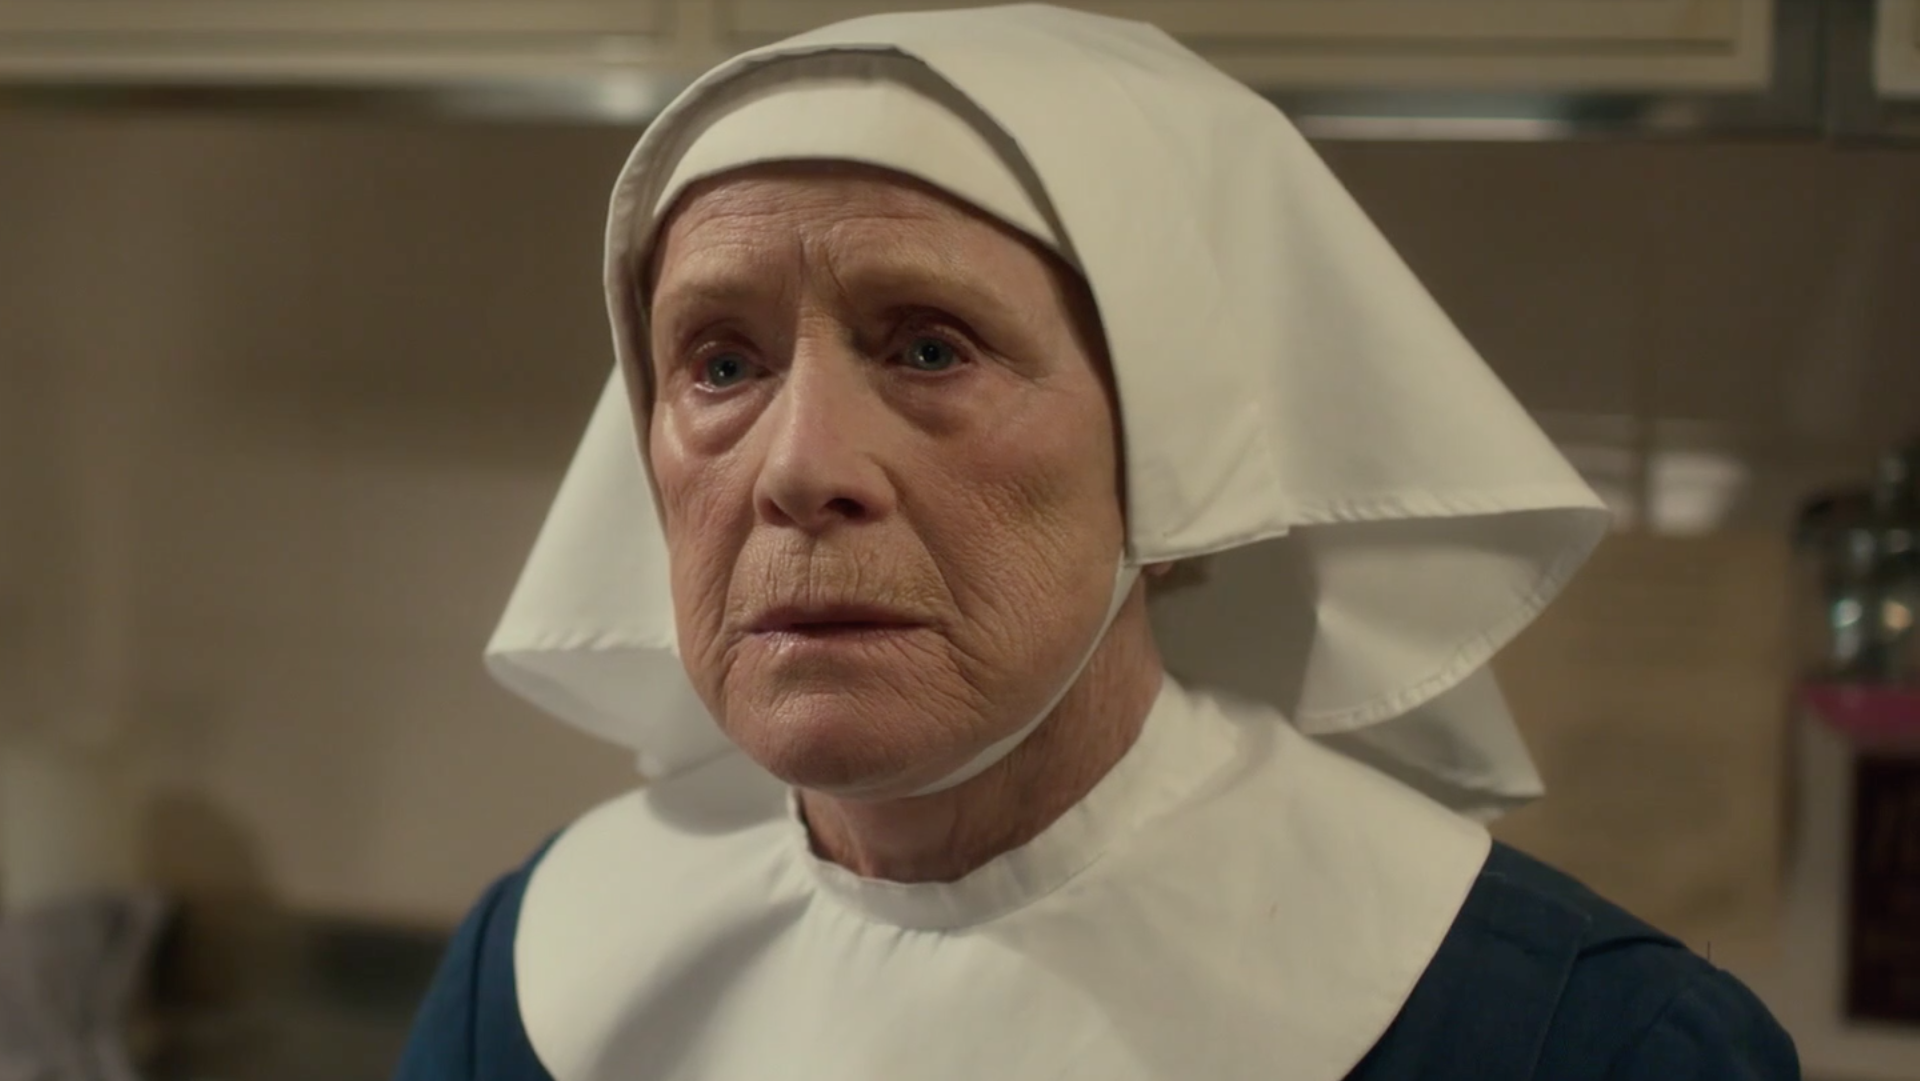 Sister Monica Joan (Judy Parfitt) learns that the old midwife bags will be replaced and discarded.